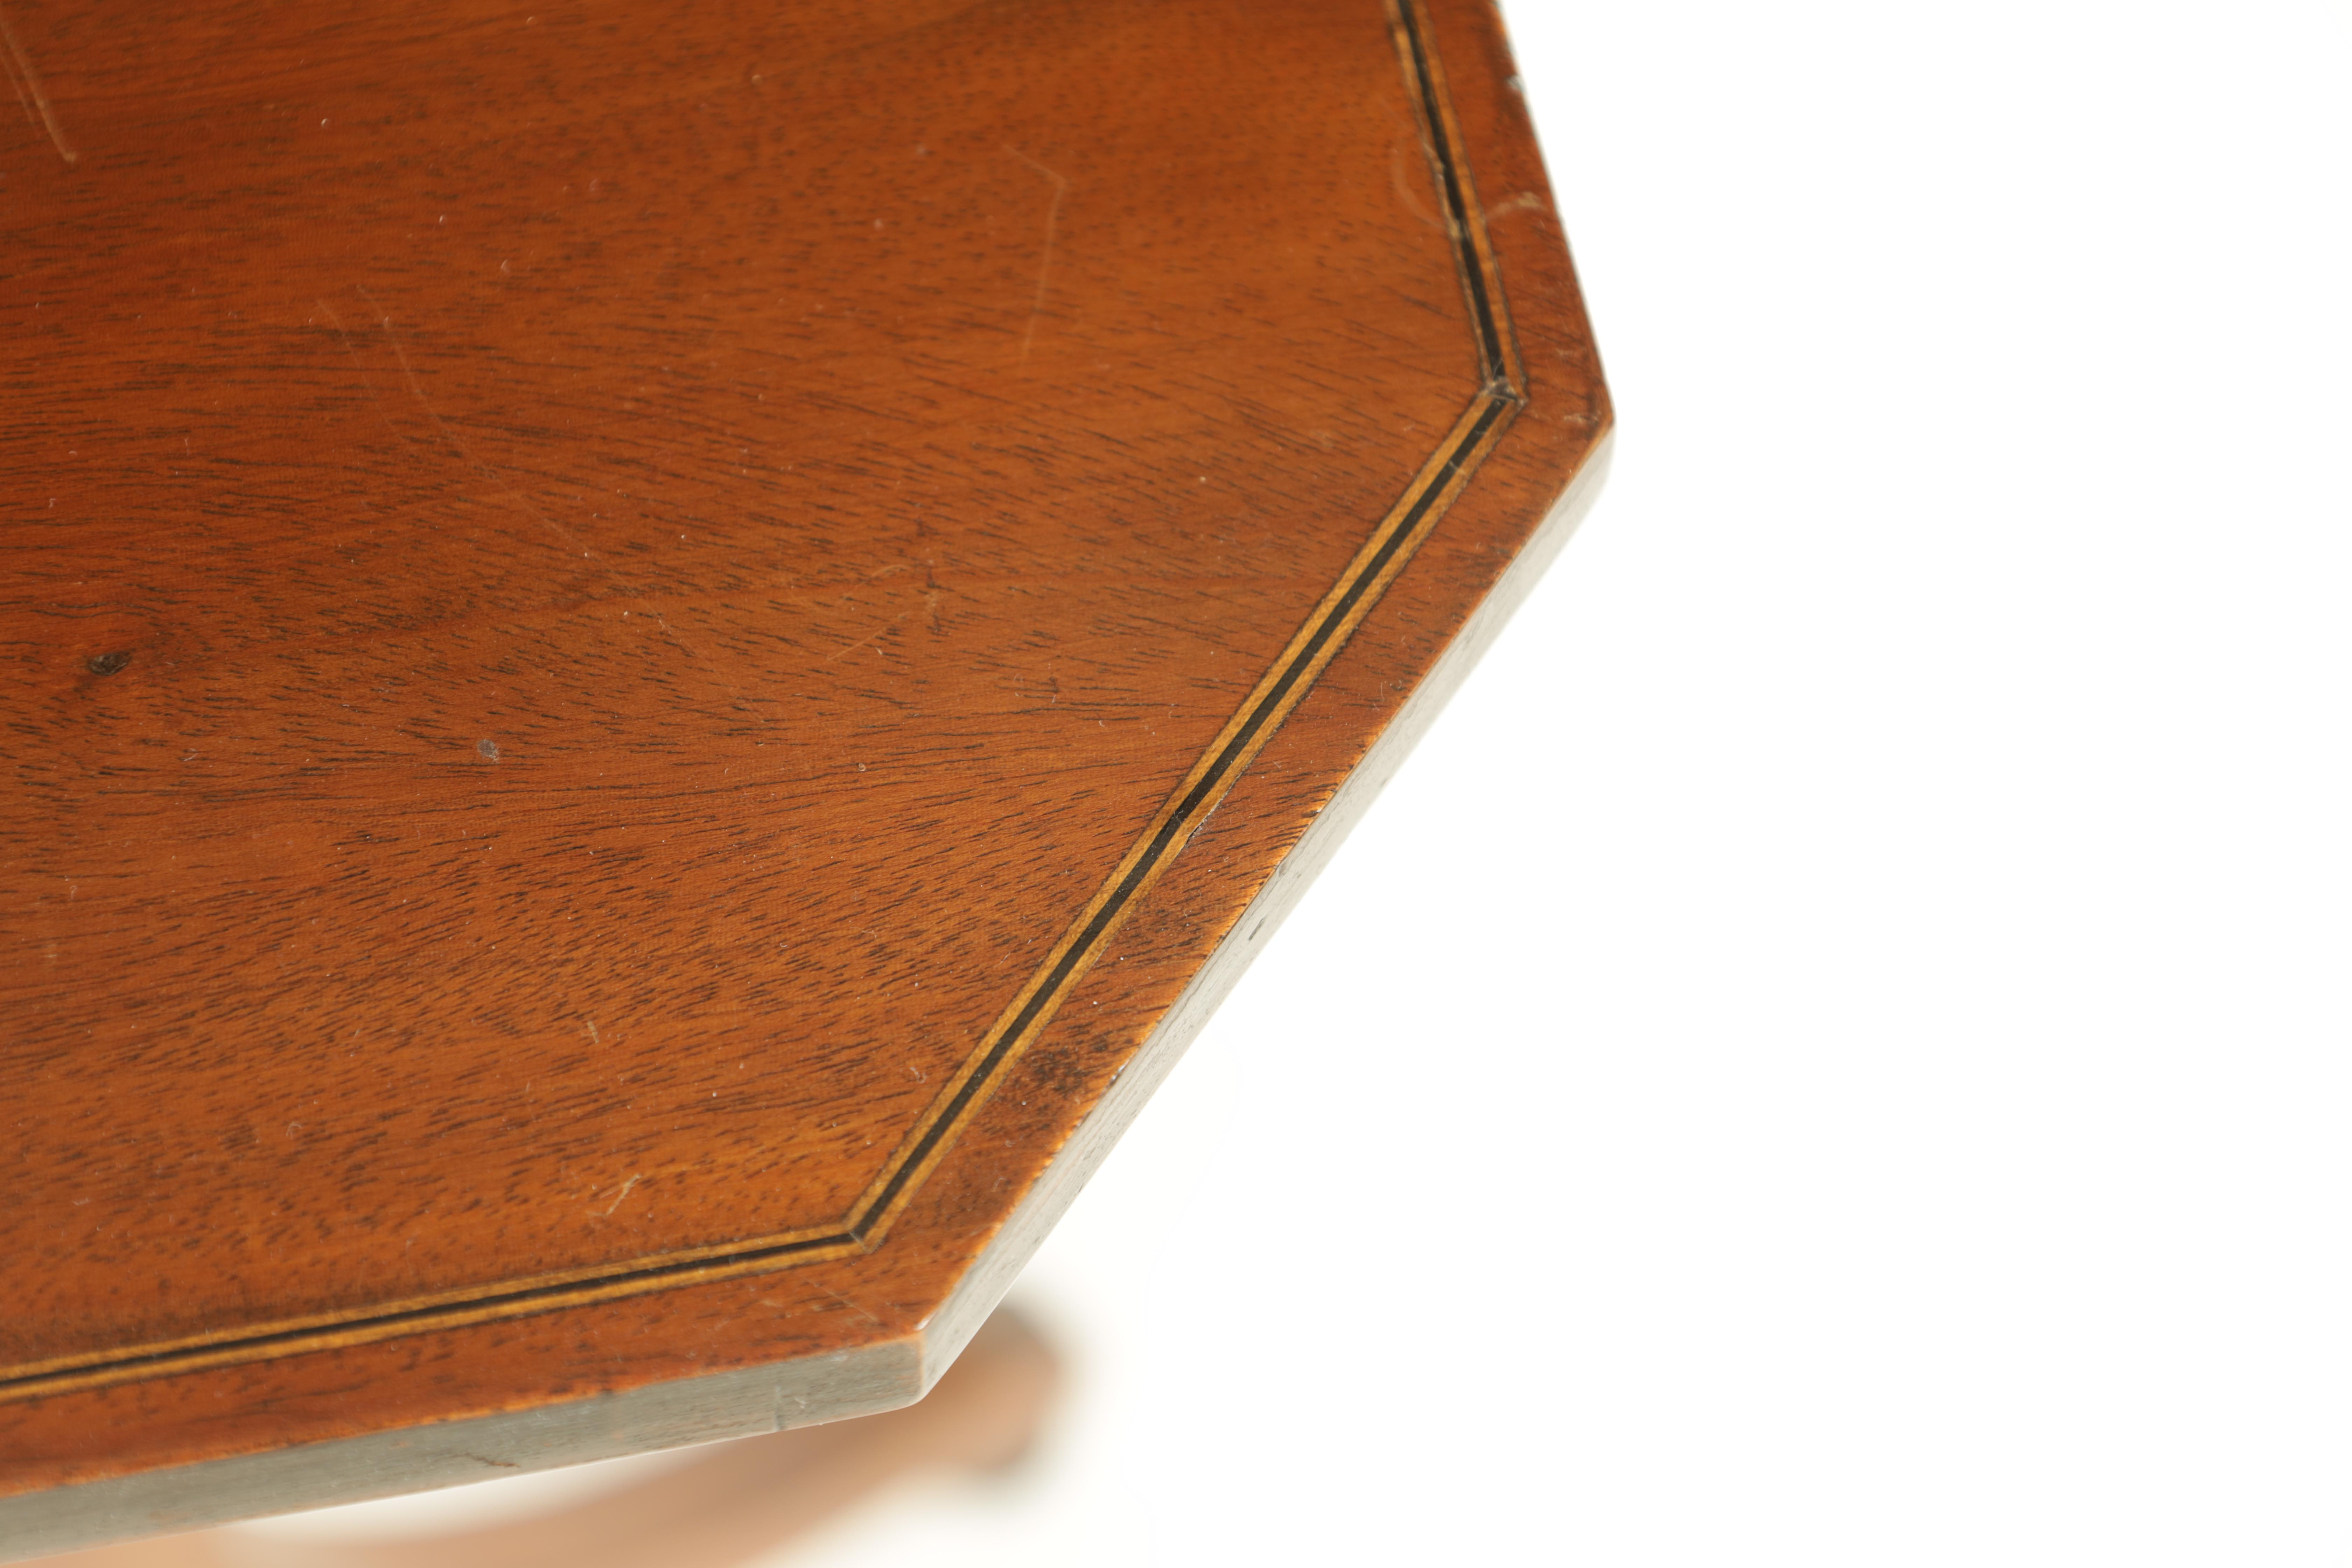 A REGENCY MAHOGANY ADJUSTABLE OCCASIONAL/READING TABLE with clipped corners and tilting top, - Image 4 of 9